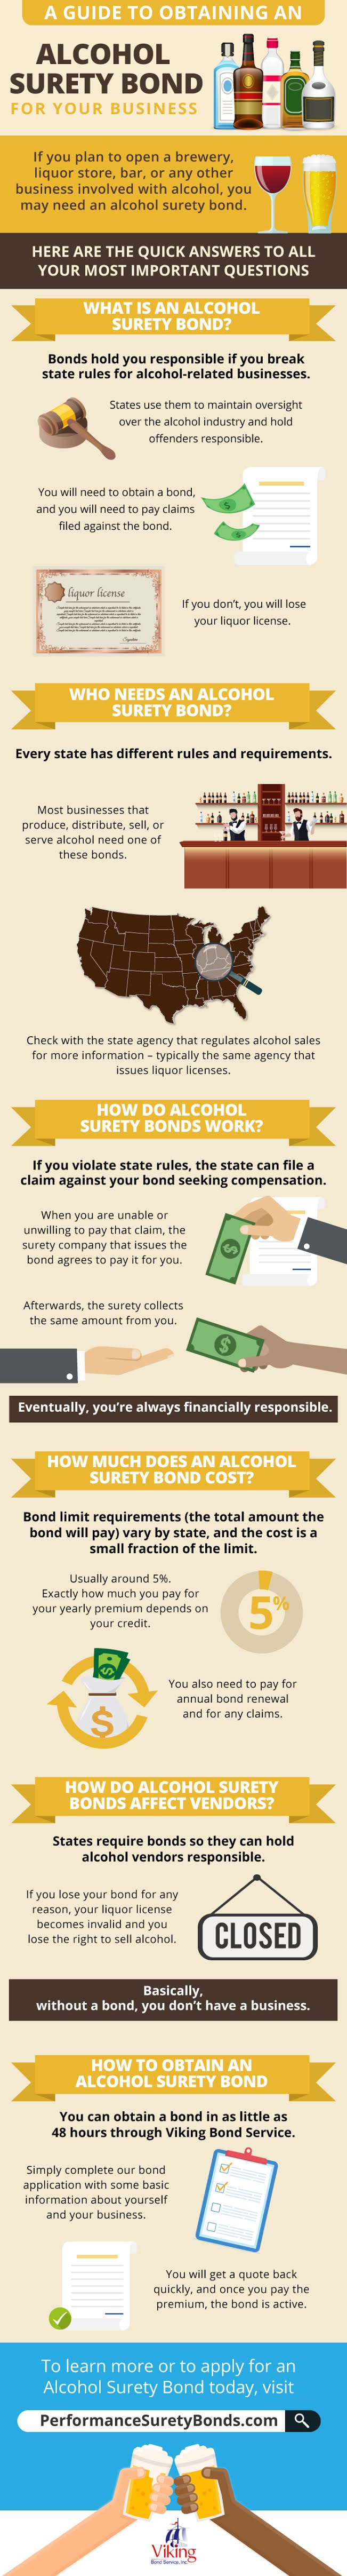 A Guide to Obtaining an Alcohol Surety Bond for Your Business #infographic